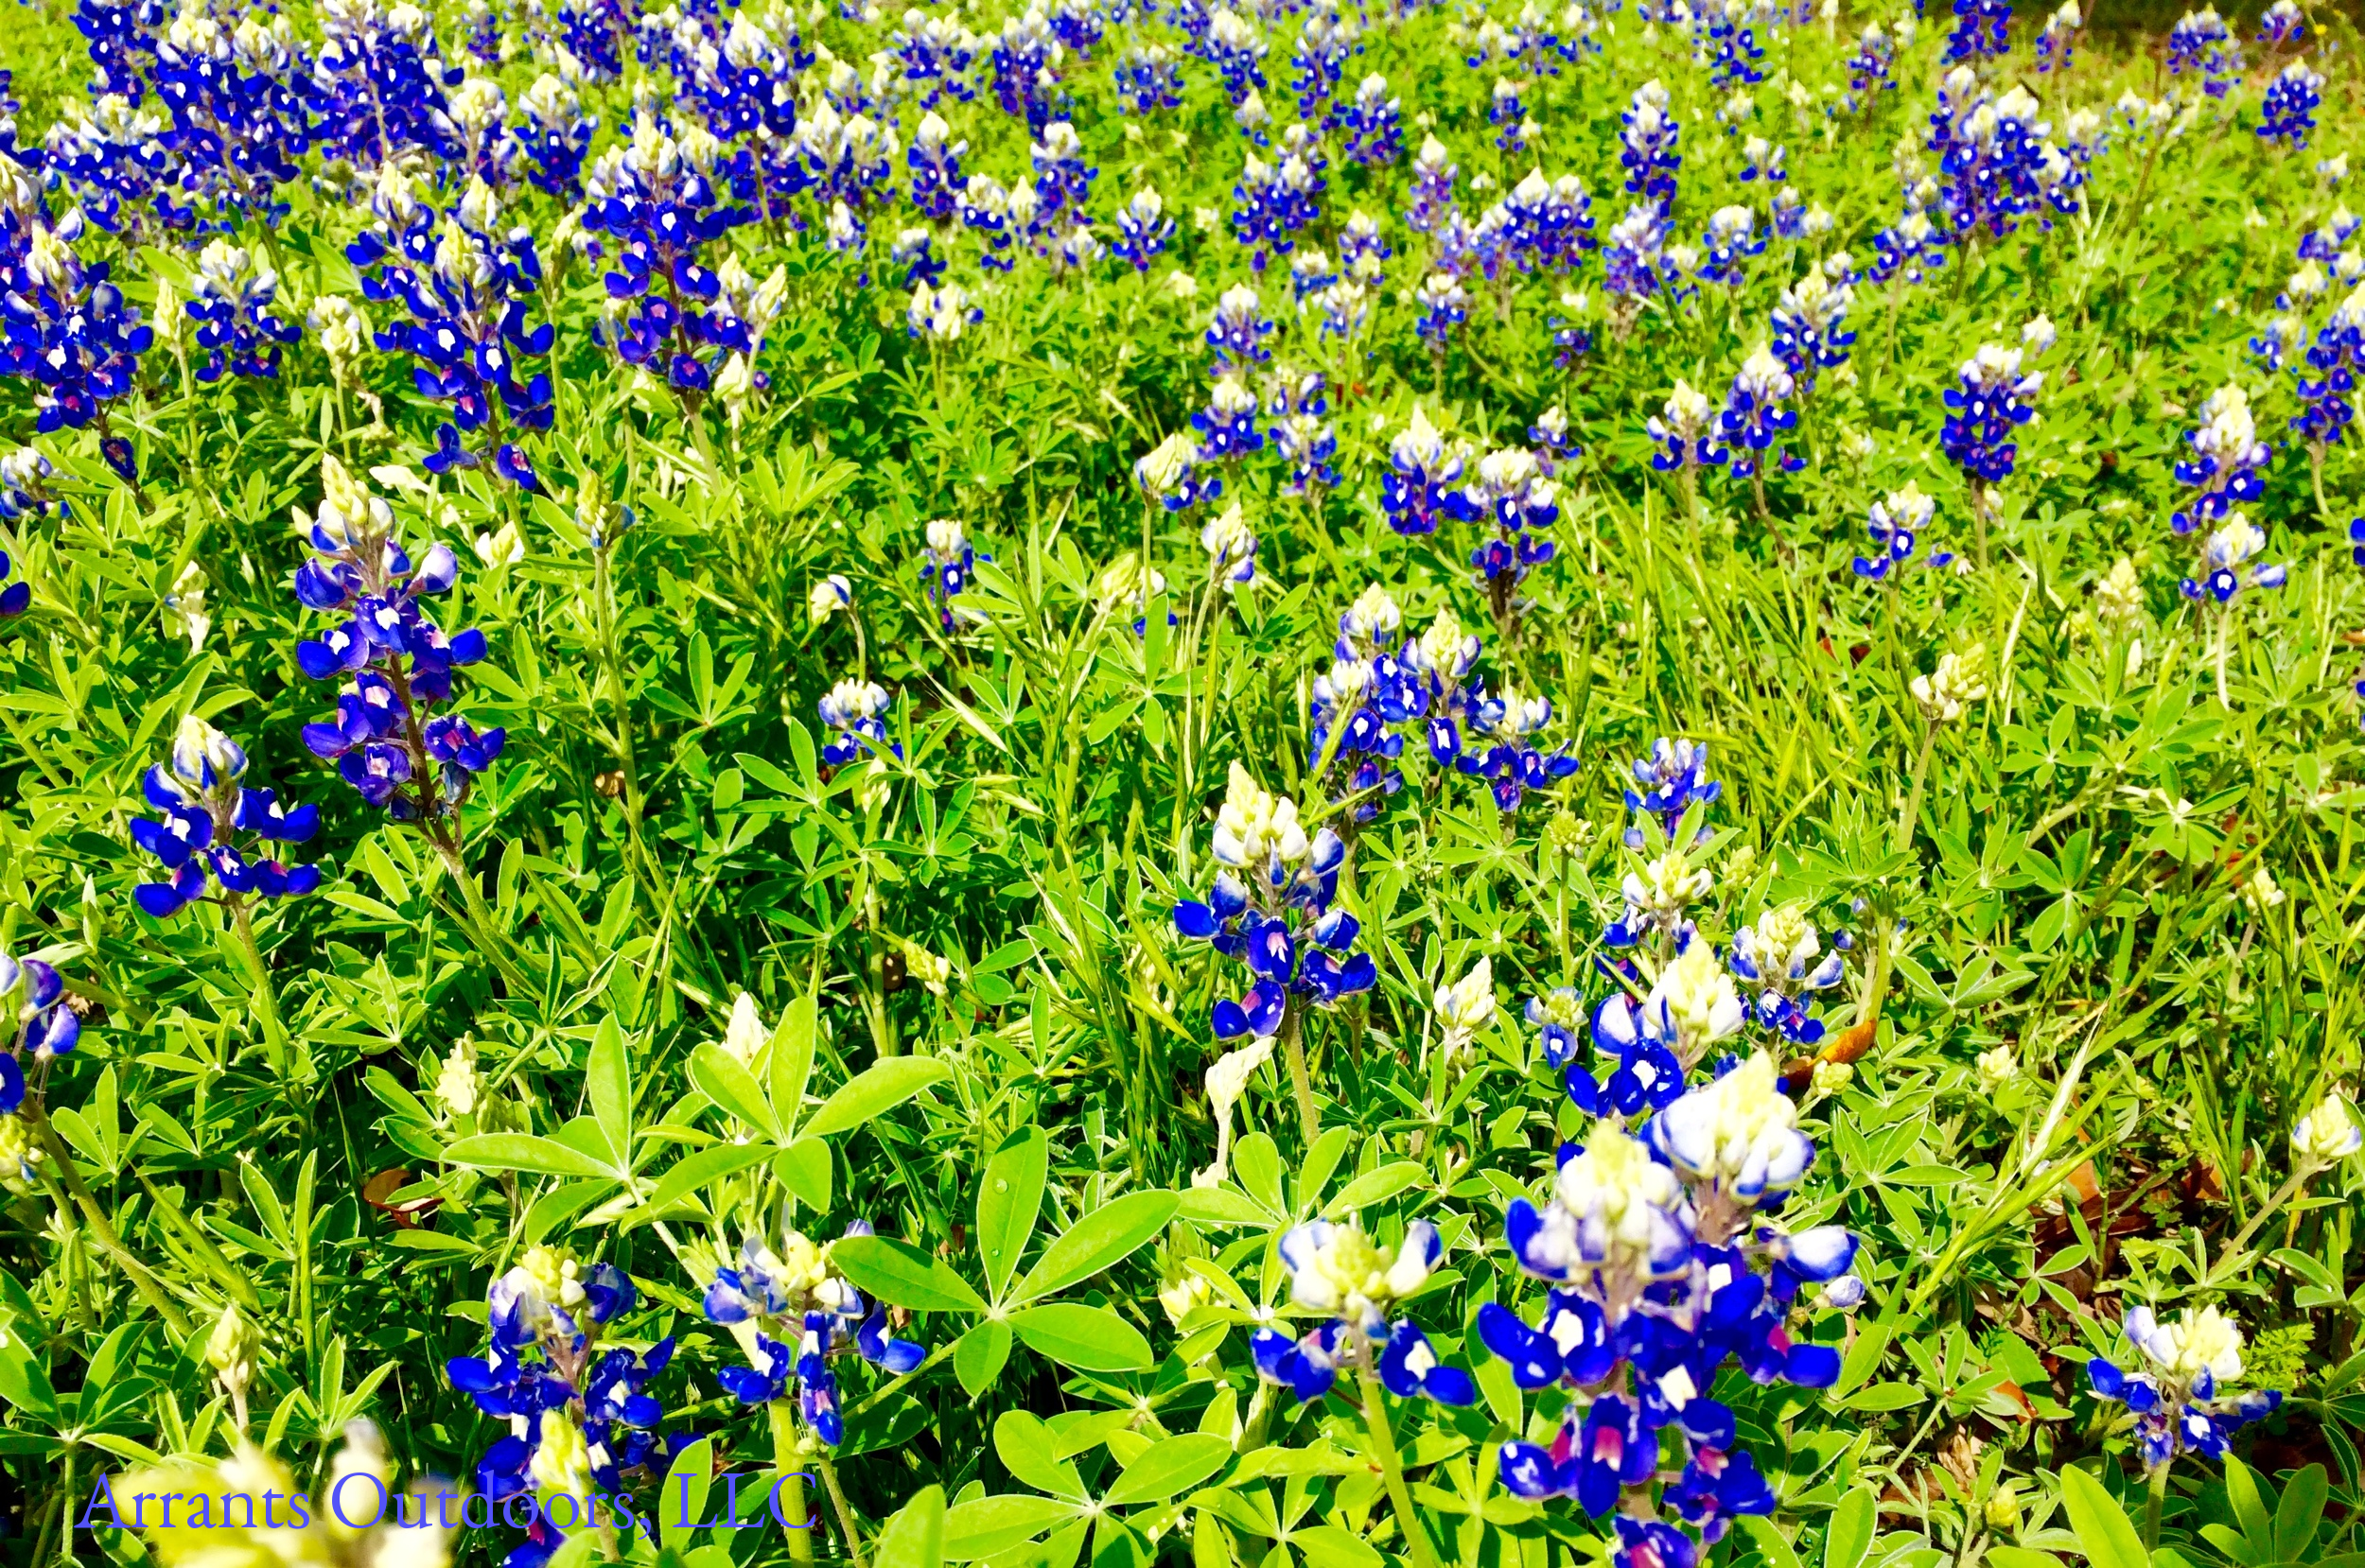 The deeper blues and palmately compound leaves of the Texas Bluebonnet (Lupinus texensis).